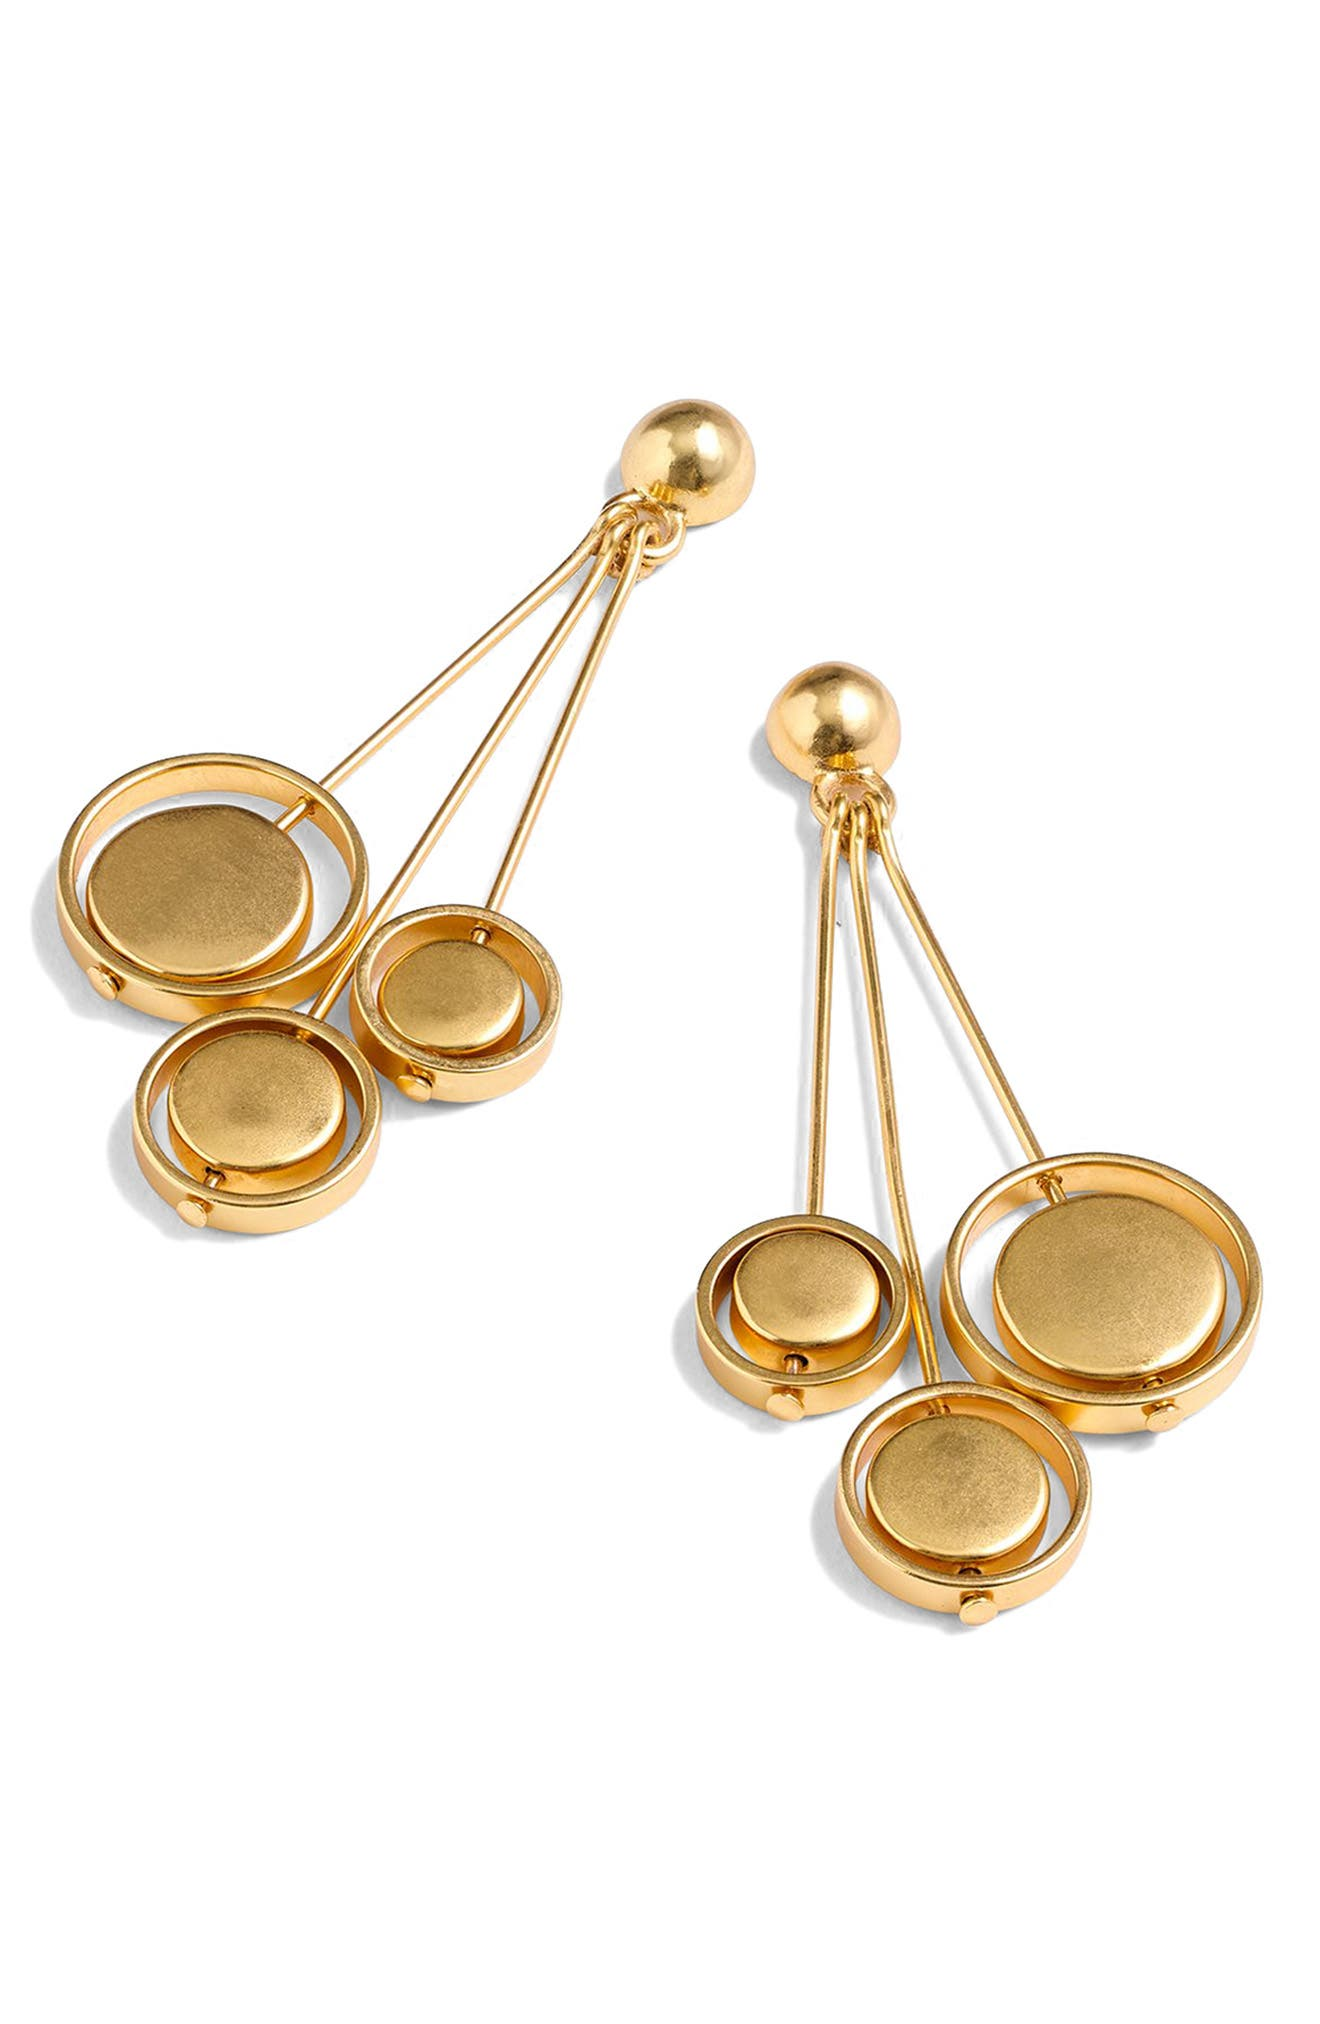 Orb Drop Earrings,                         Main,                         color, Gold